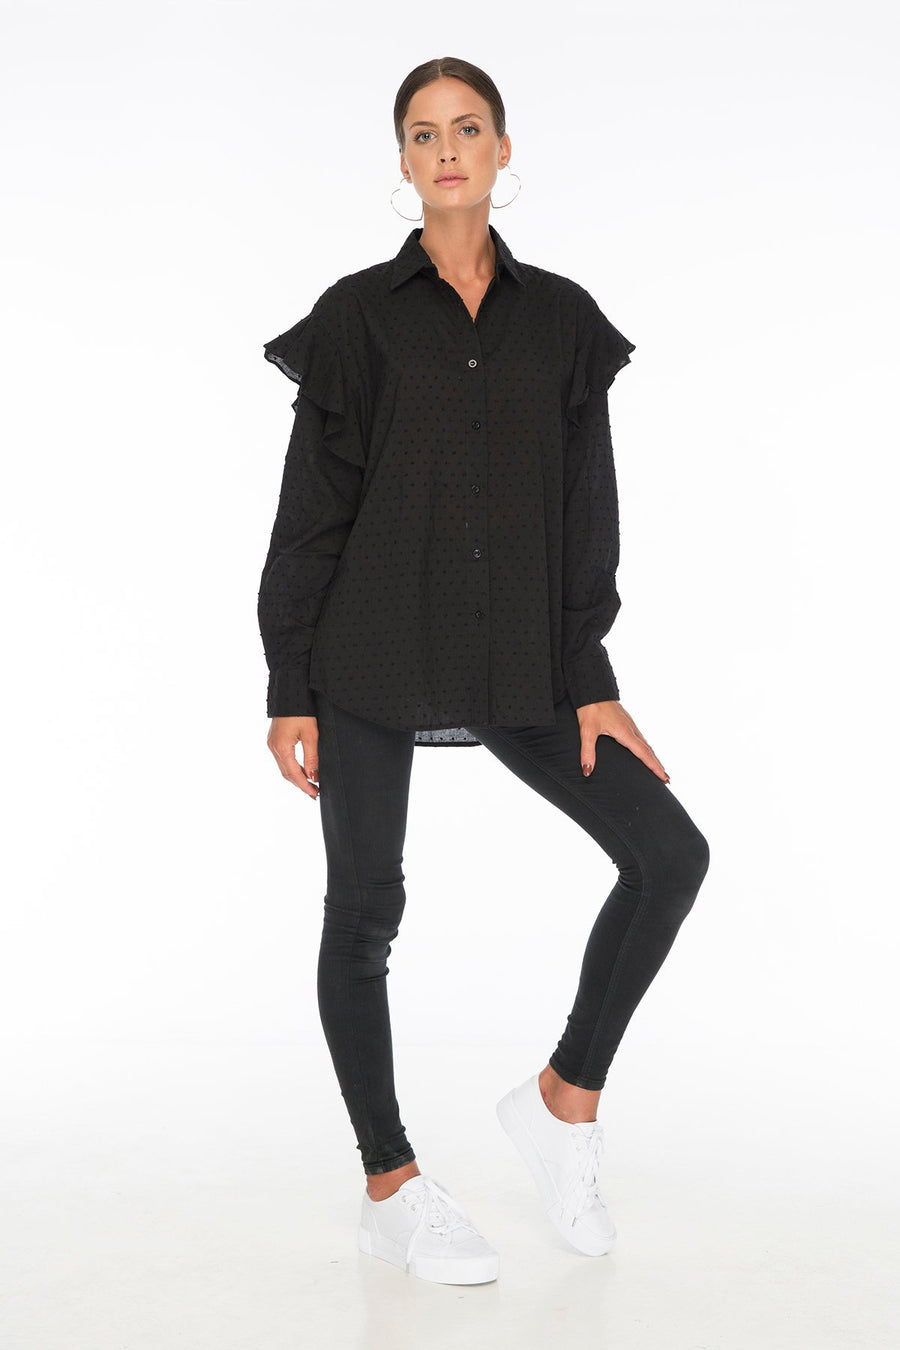 Jess Abby Ruffle Black Shirt